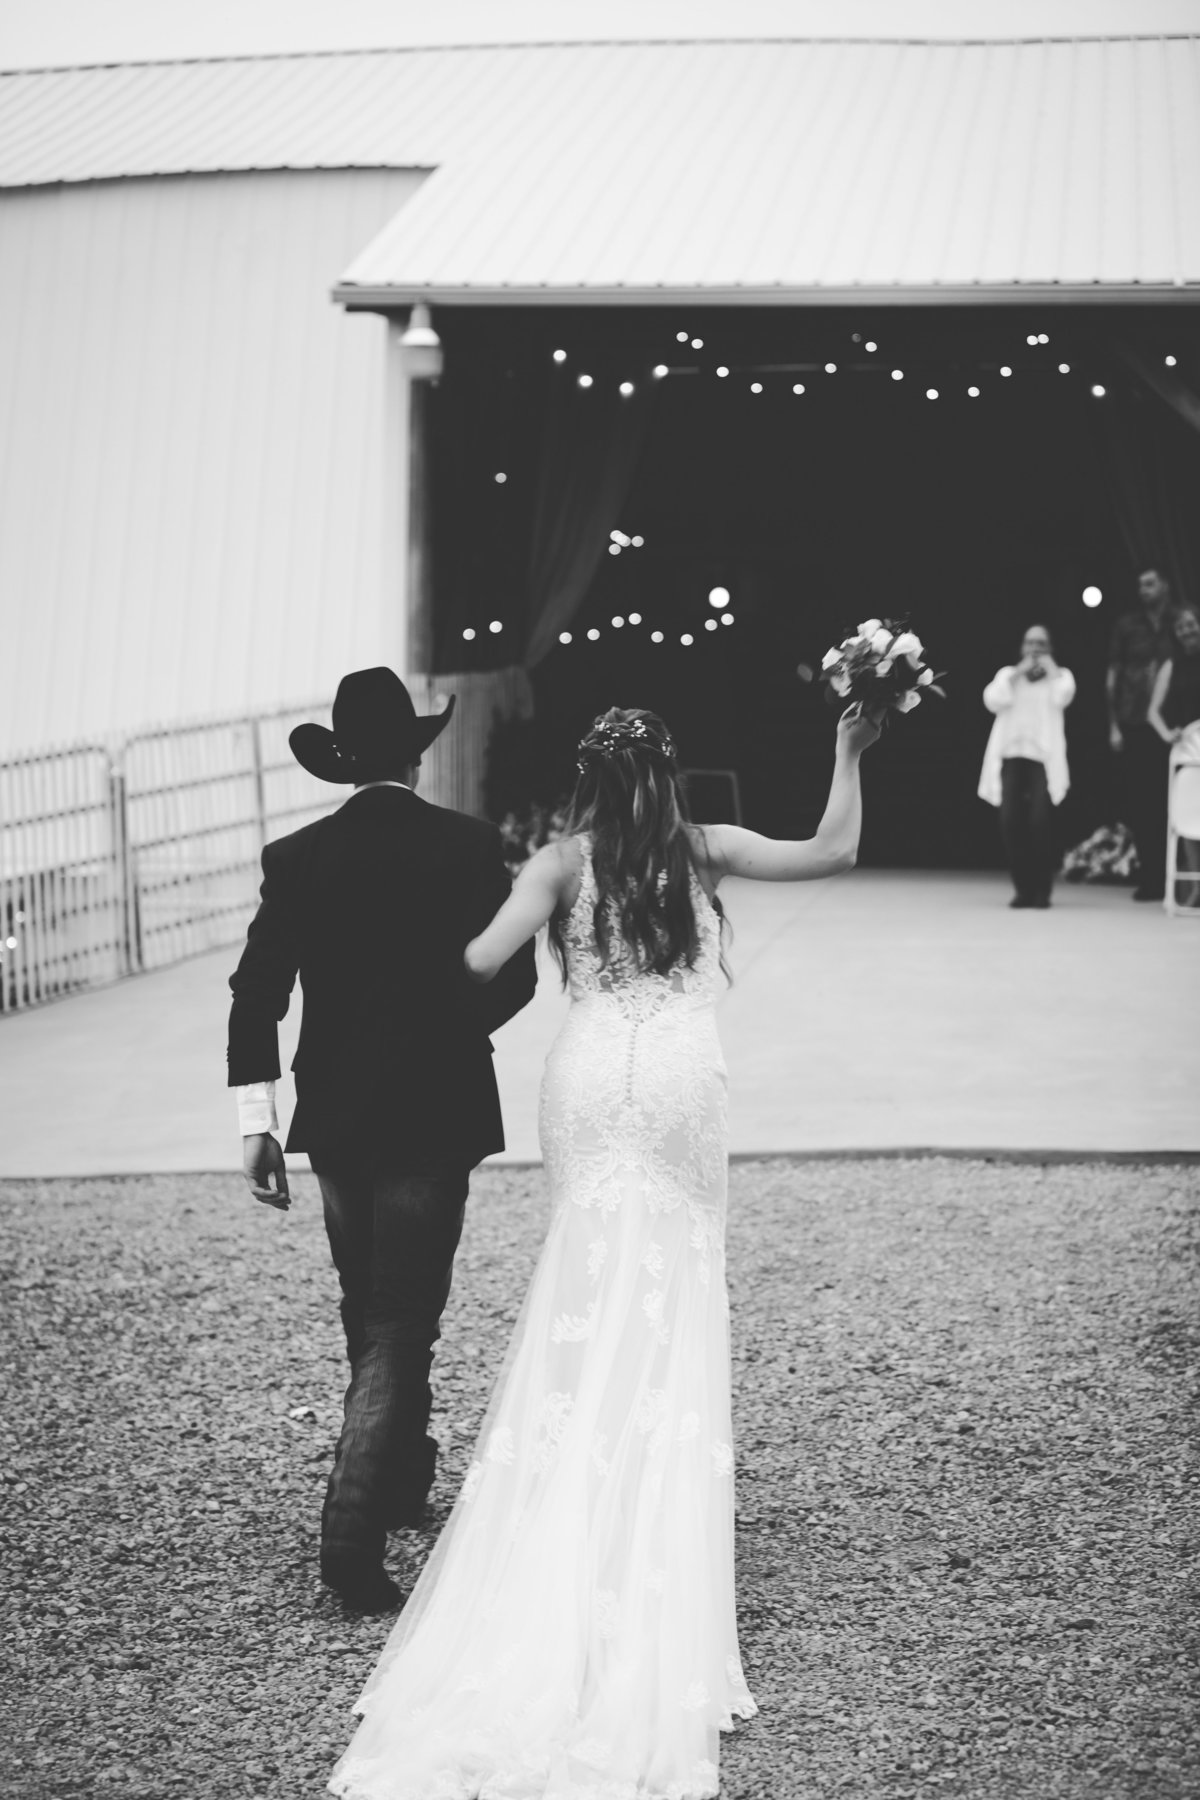 Nsshville Bride - Nashville Brides - The Hayloft Weddings - Tennessee Brides - Kentucky Brides - Southern Brides - Cowboys Wife - Cowboys Bride - Ranch Weddings - Cowboys and Belles113